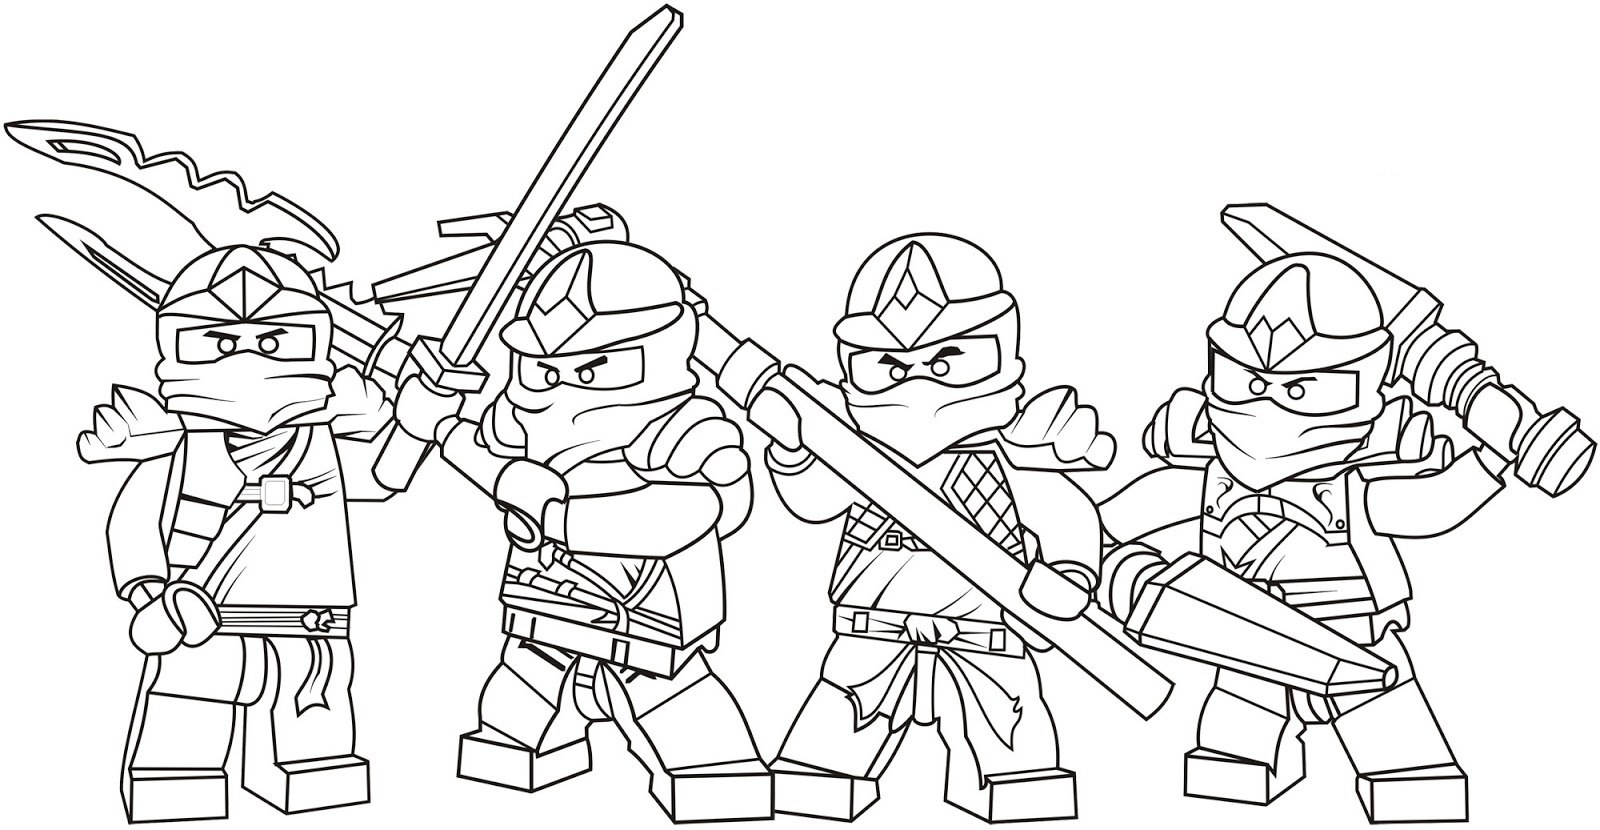 Delightful Ninjago Coloring Pages